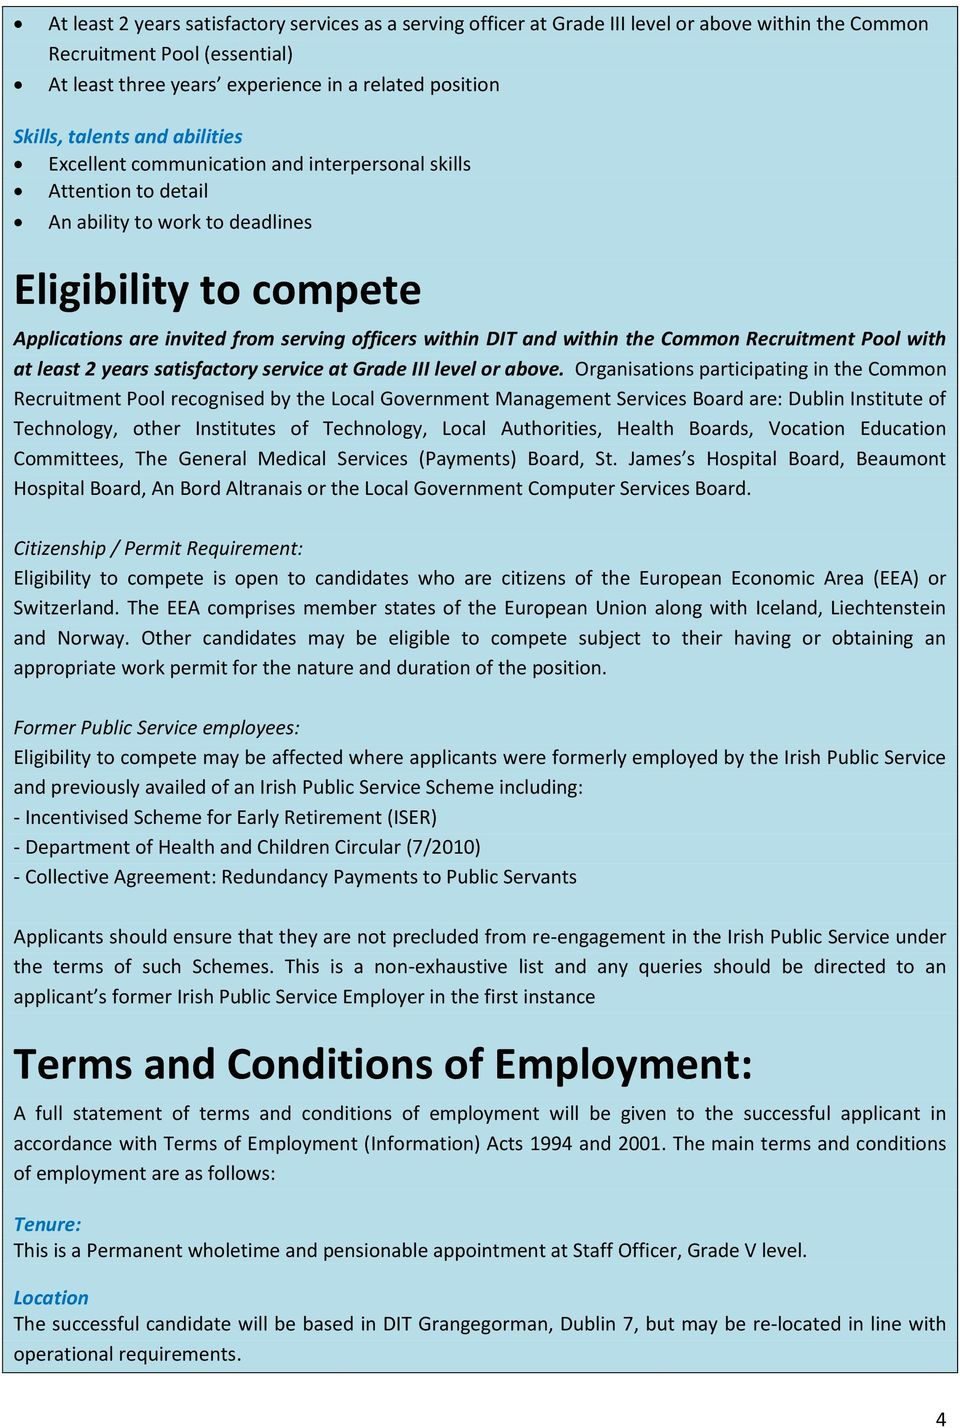 DIT and within the Common Recruitment Pool with at least 2 years satisfactory service at Grade III level or above.